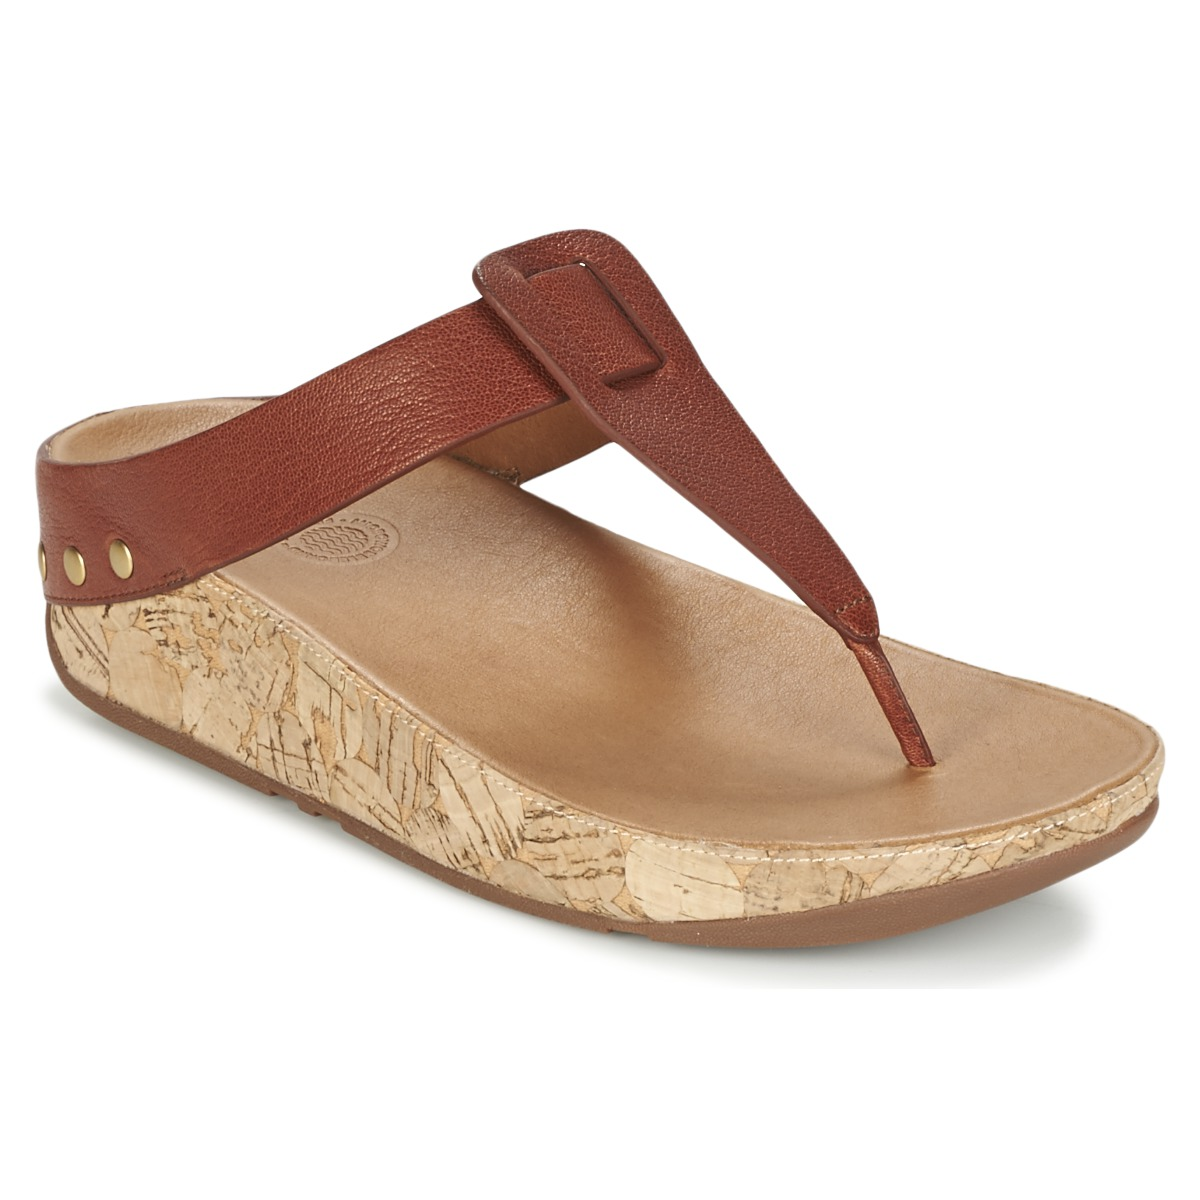 Sandals Fitflop Ibiza Cork Dark Tan Free Delivery With